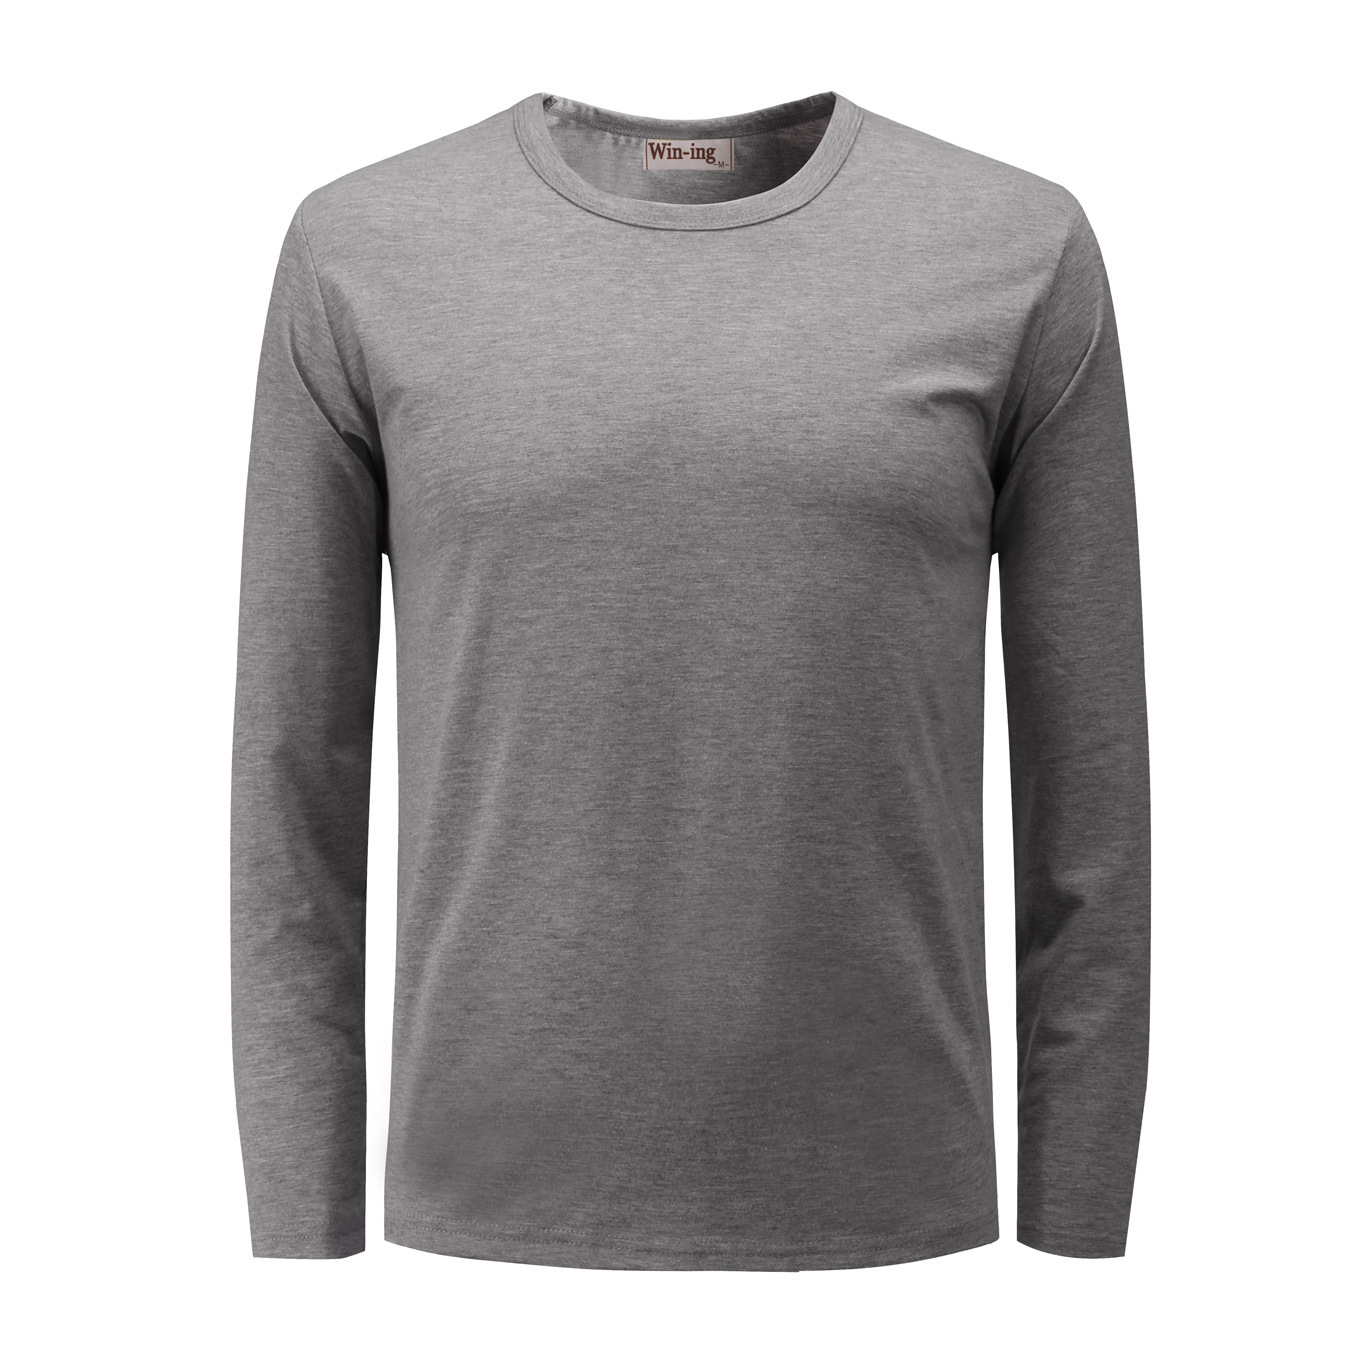 Long Sleeve Round Neck Solid Color Men's Blank T-shirt  Win-ing Elastic Combing Lycra Cotton